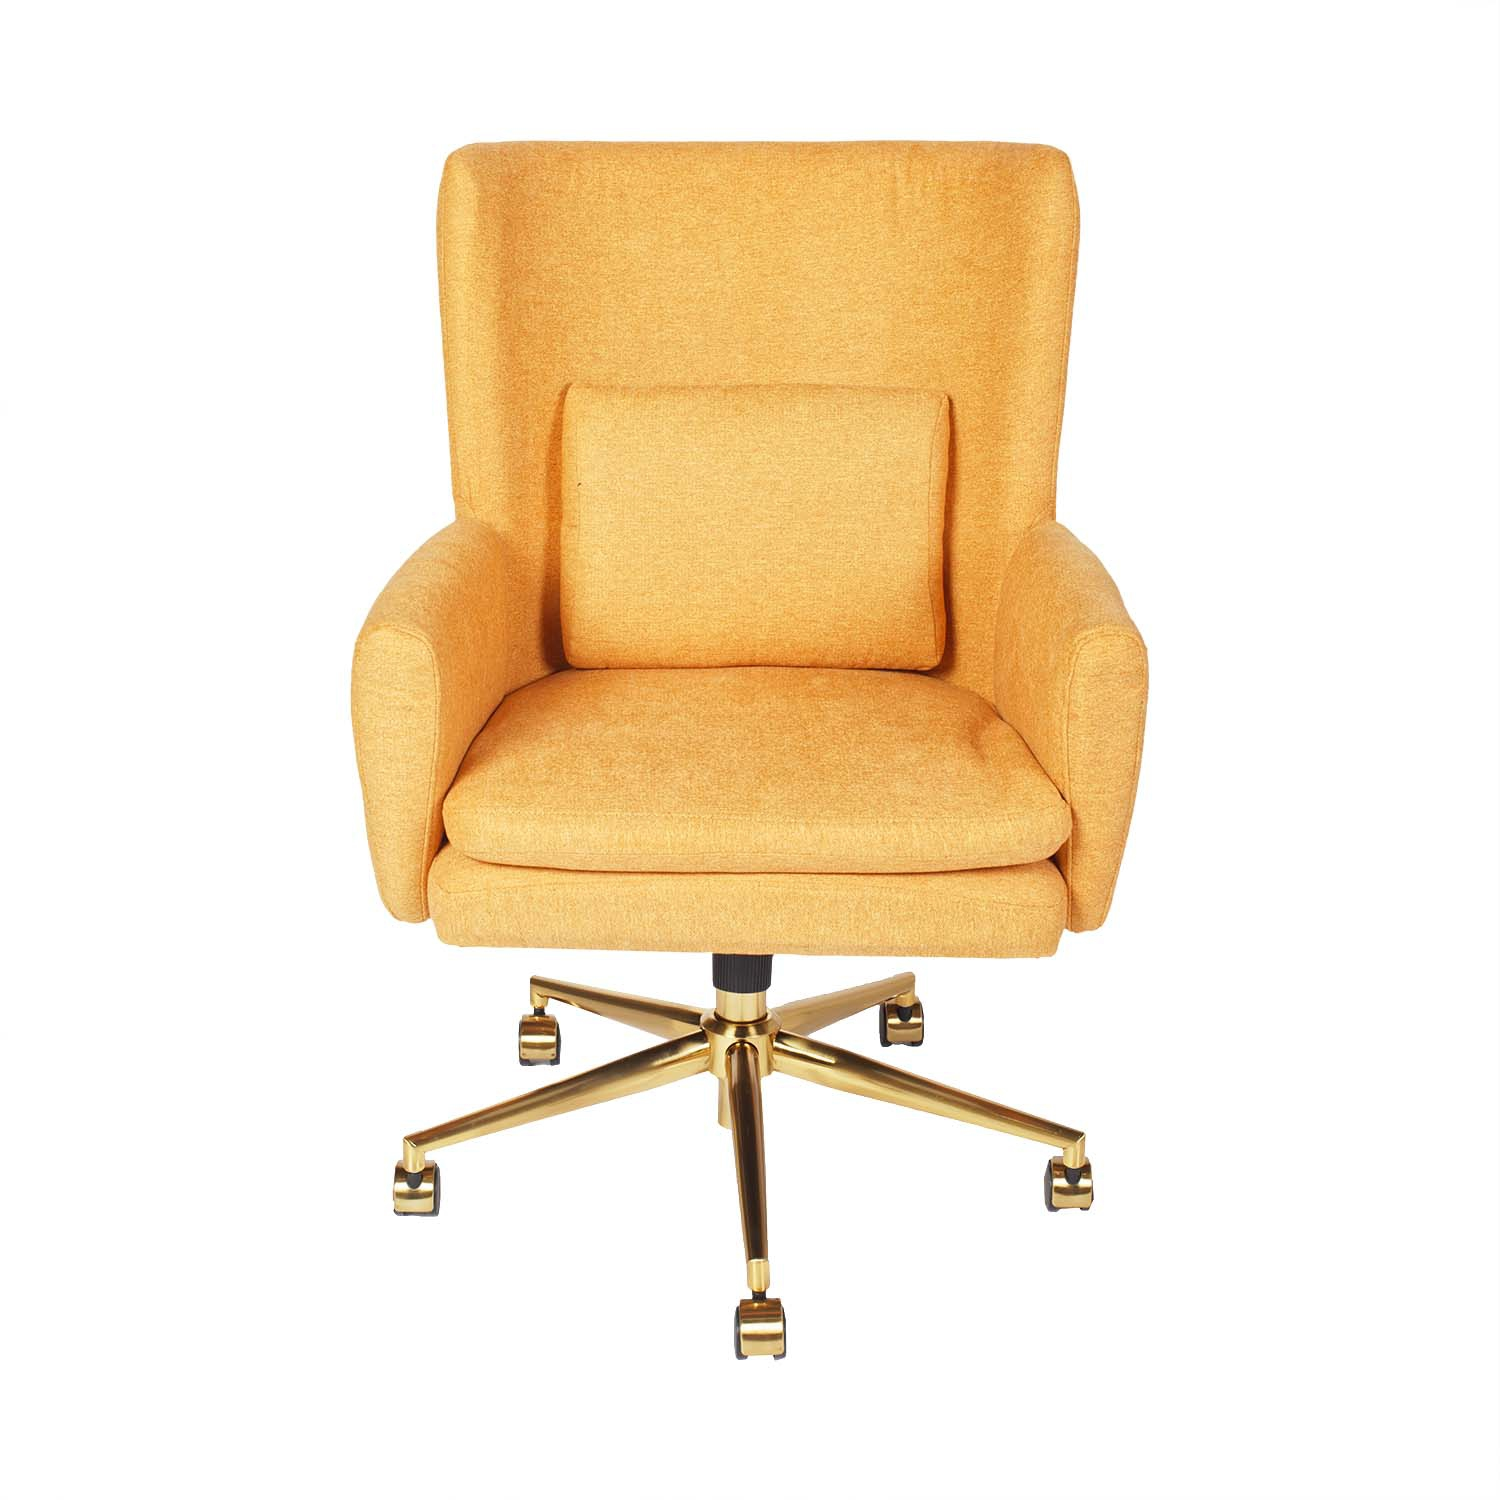 Homy Casa Home Office Chair Adjustable Height Task Chair With Armrest For Learning Fabric Chair Yellow Best Buy Canada